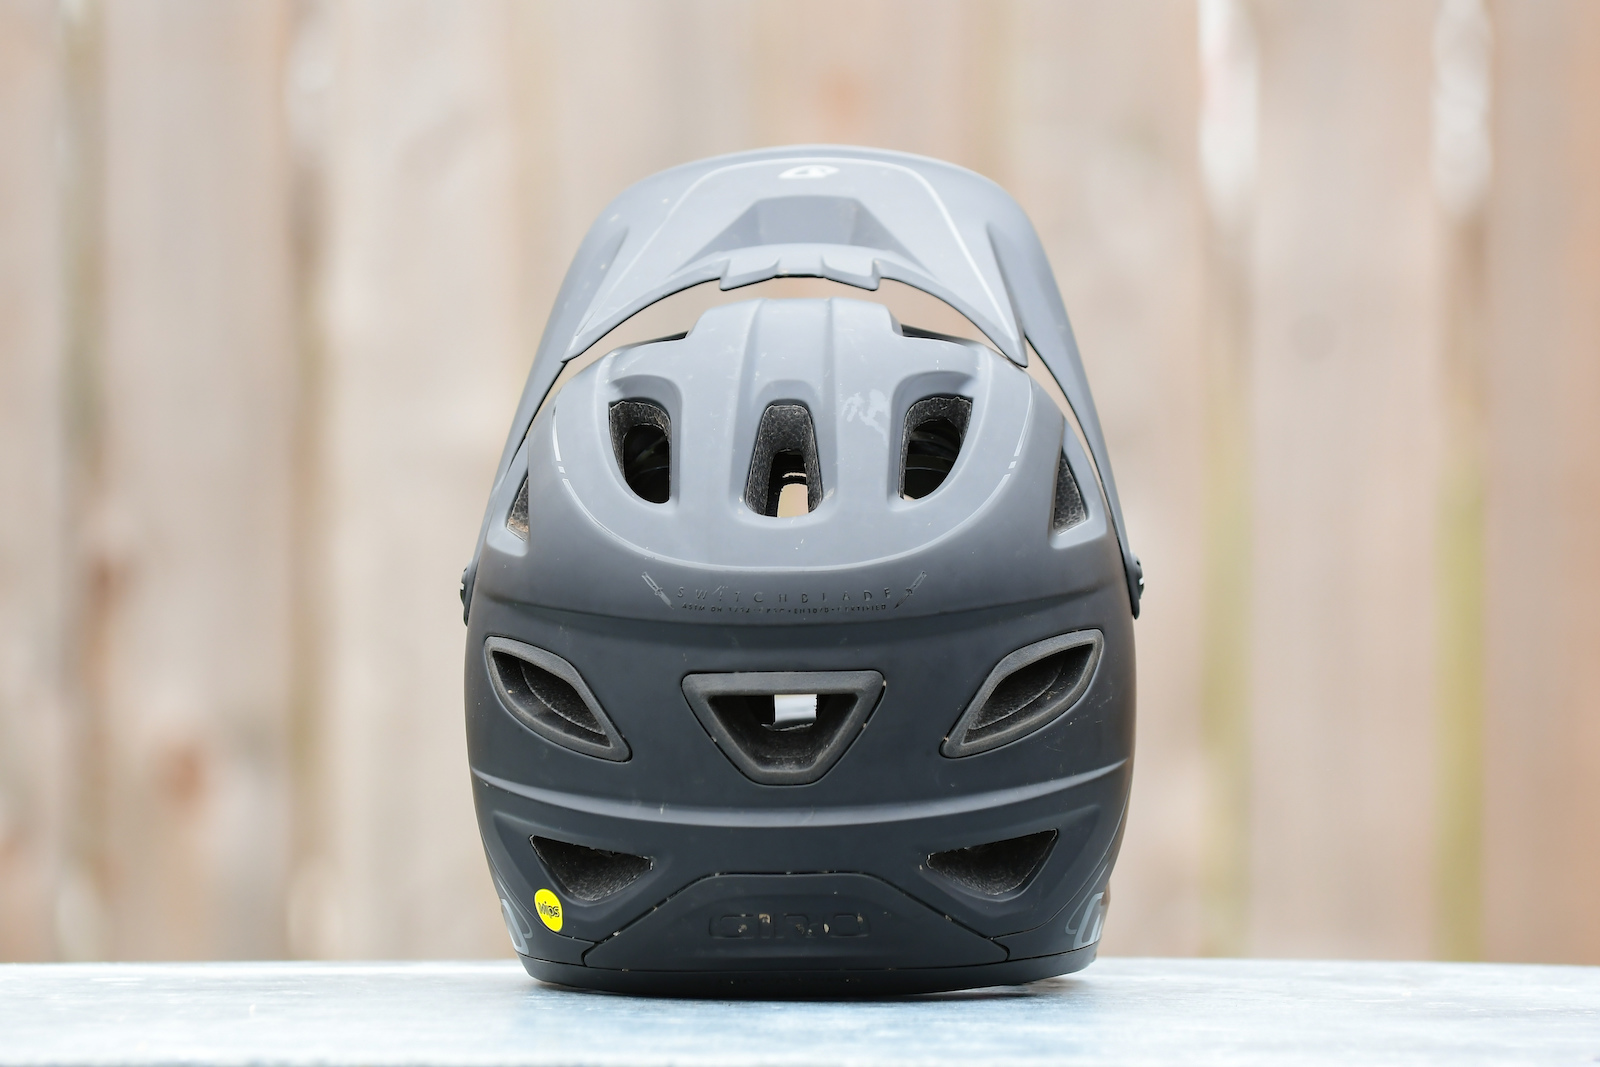 Enduro full face ridden and rated